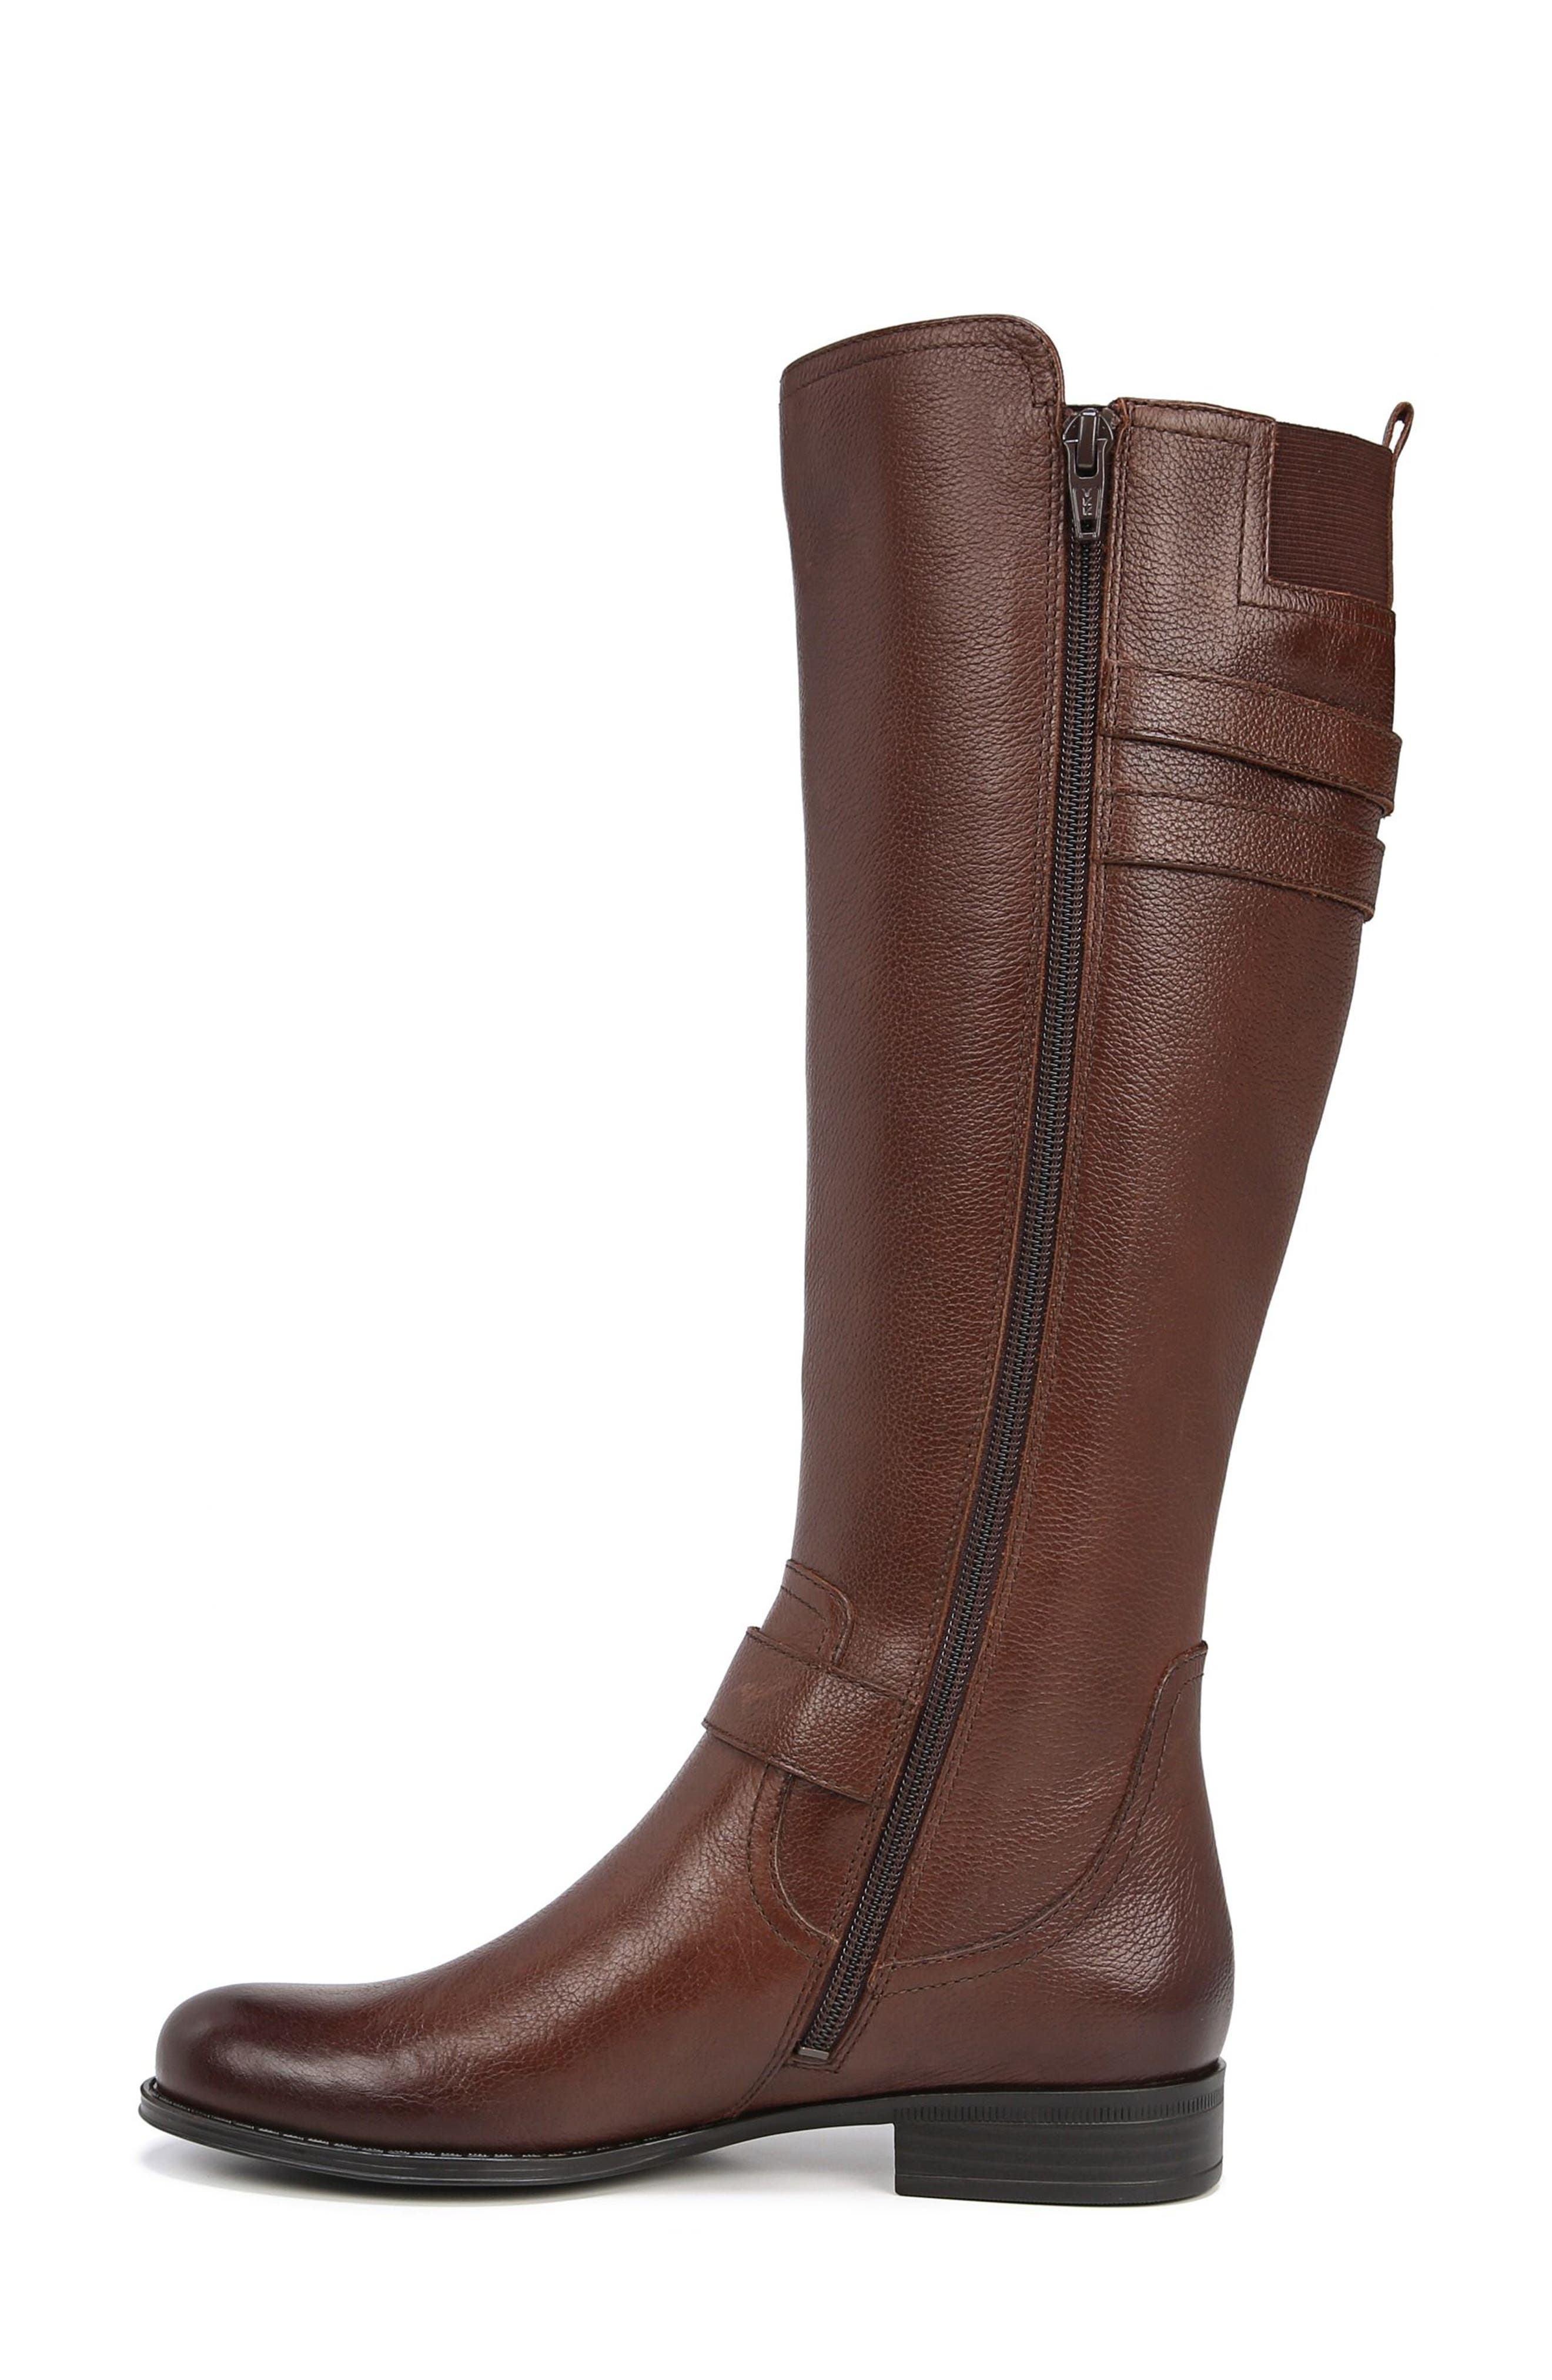 NATURALIZER, Jessie Knee High Riding Boot, Alternate thumbnail 7, color, CHOCOLATE LEATHER